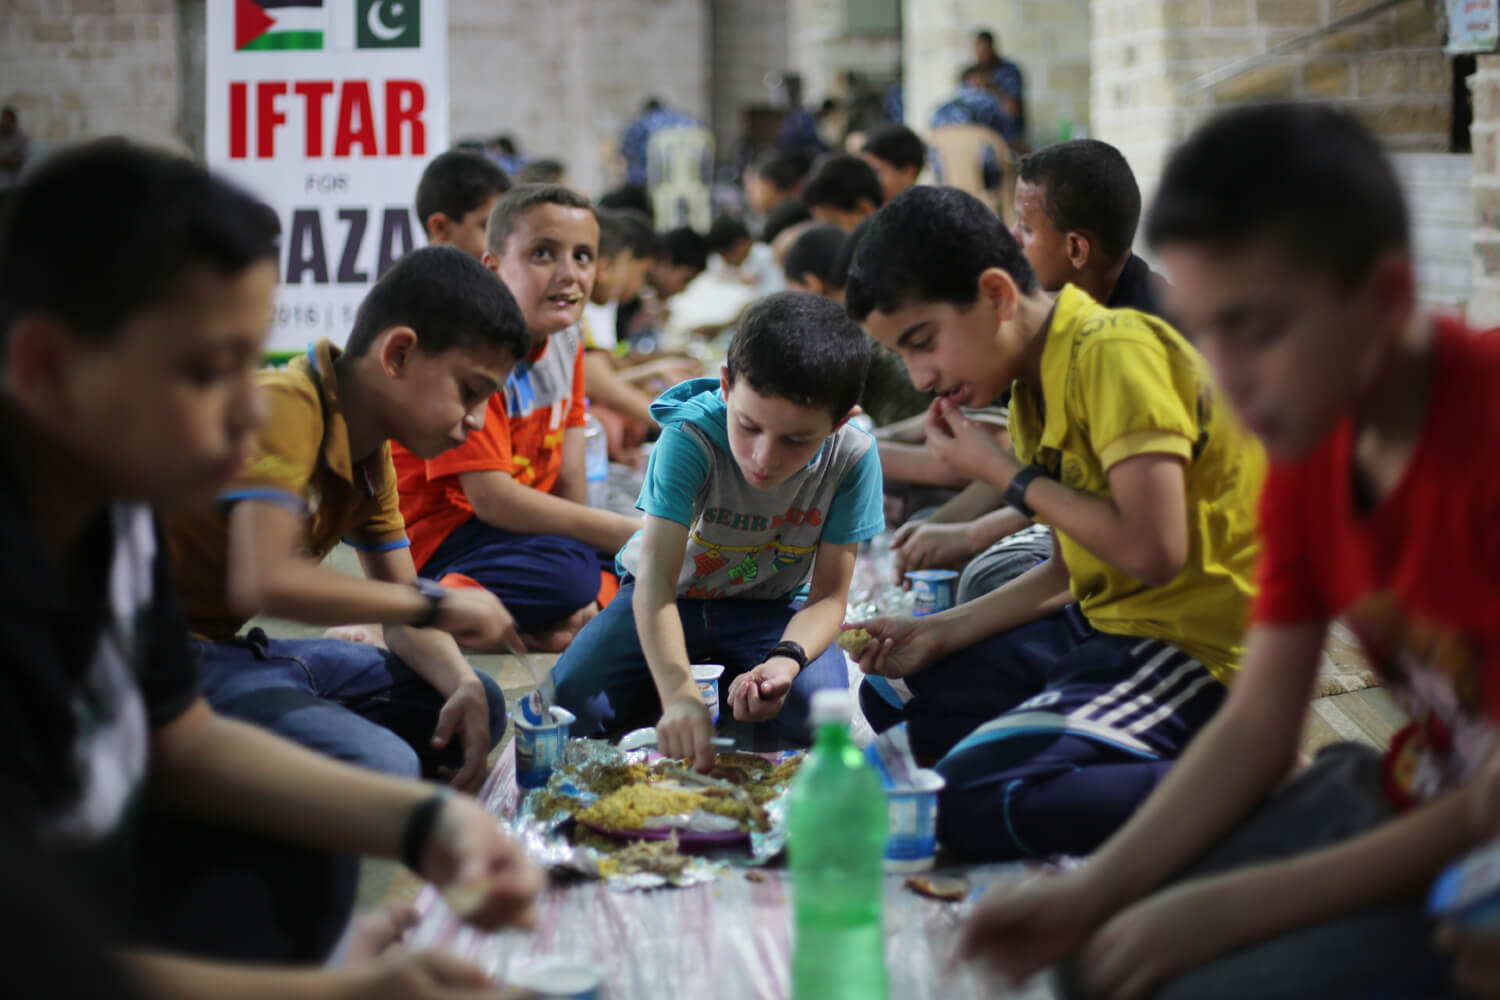 Ahmad Matter, 8, eats breakfast provided by a charitable foundation, at the Great Omari Mosque, Gaza. June 20, 2016. (Photo: Mohammed Asad)